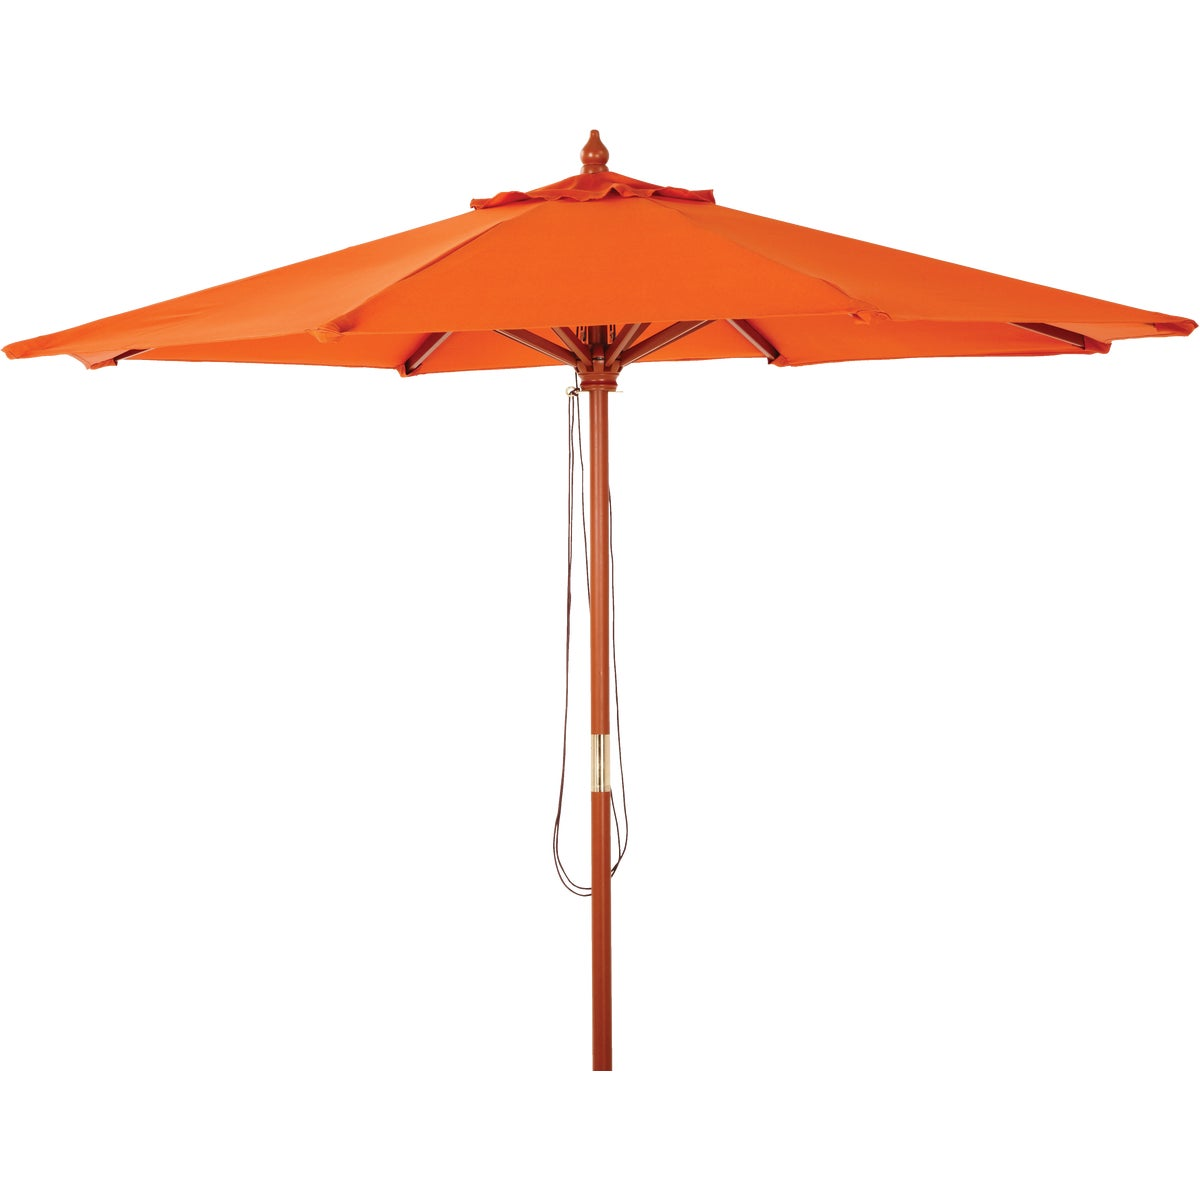 9' MARKET SPICE UMBRELLA - TJWU-003A-270-ORG by Do it Best